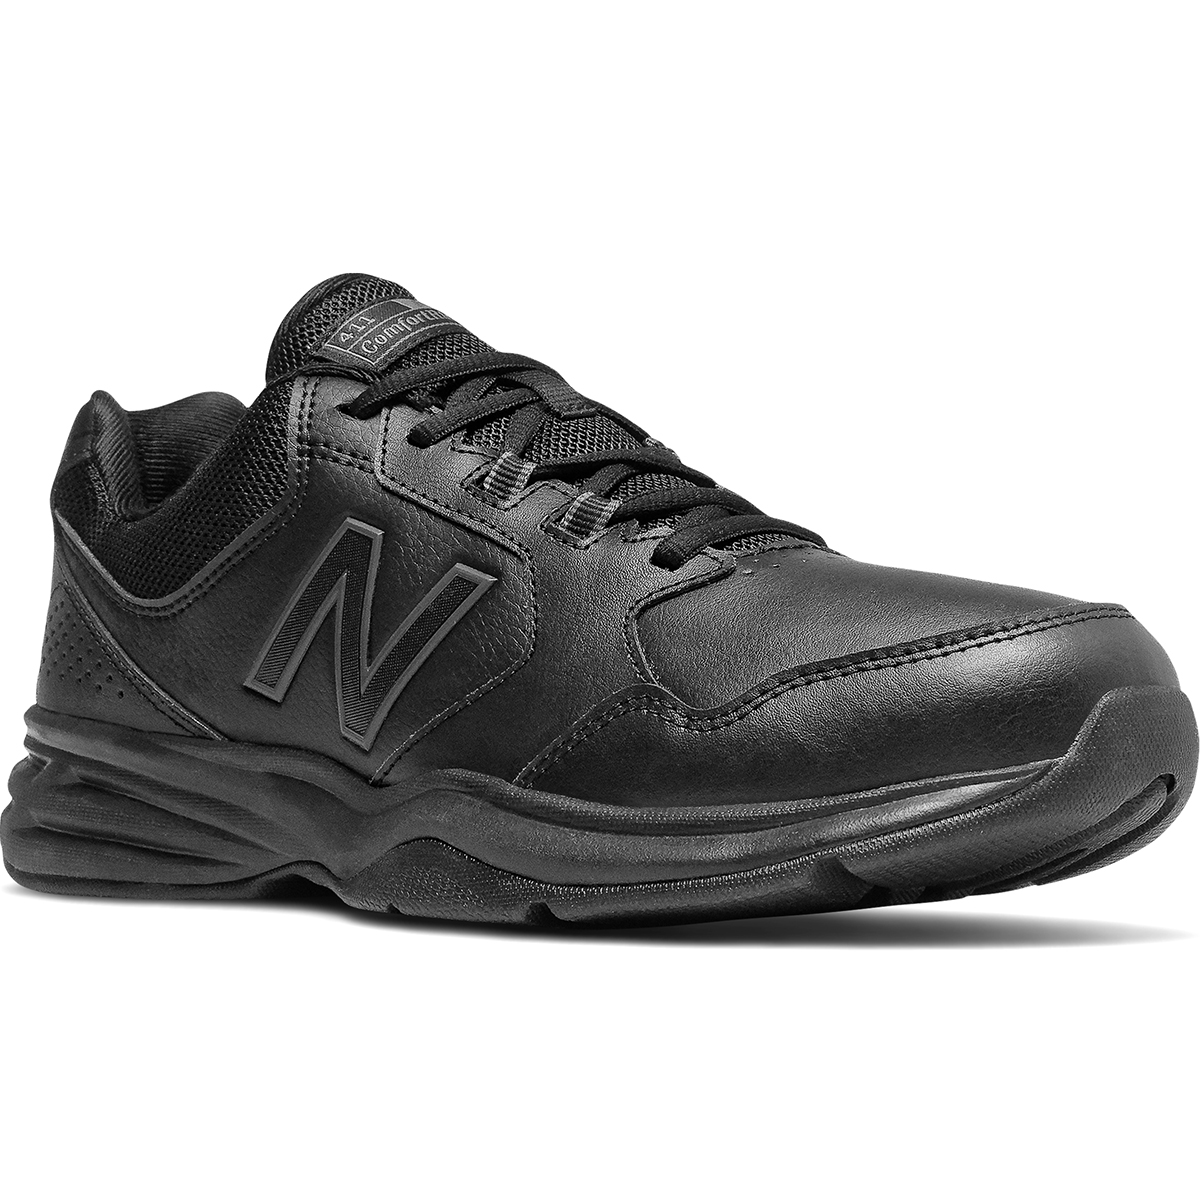 New Balance Men's 411 Walking Shoes, Wide - Black, 9.5